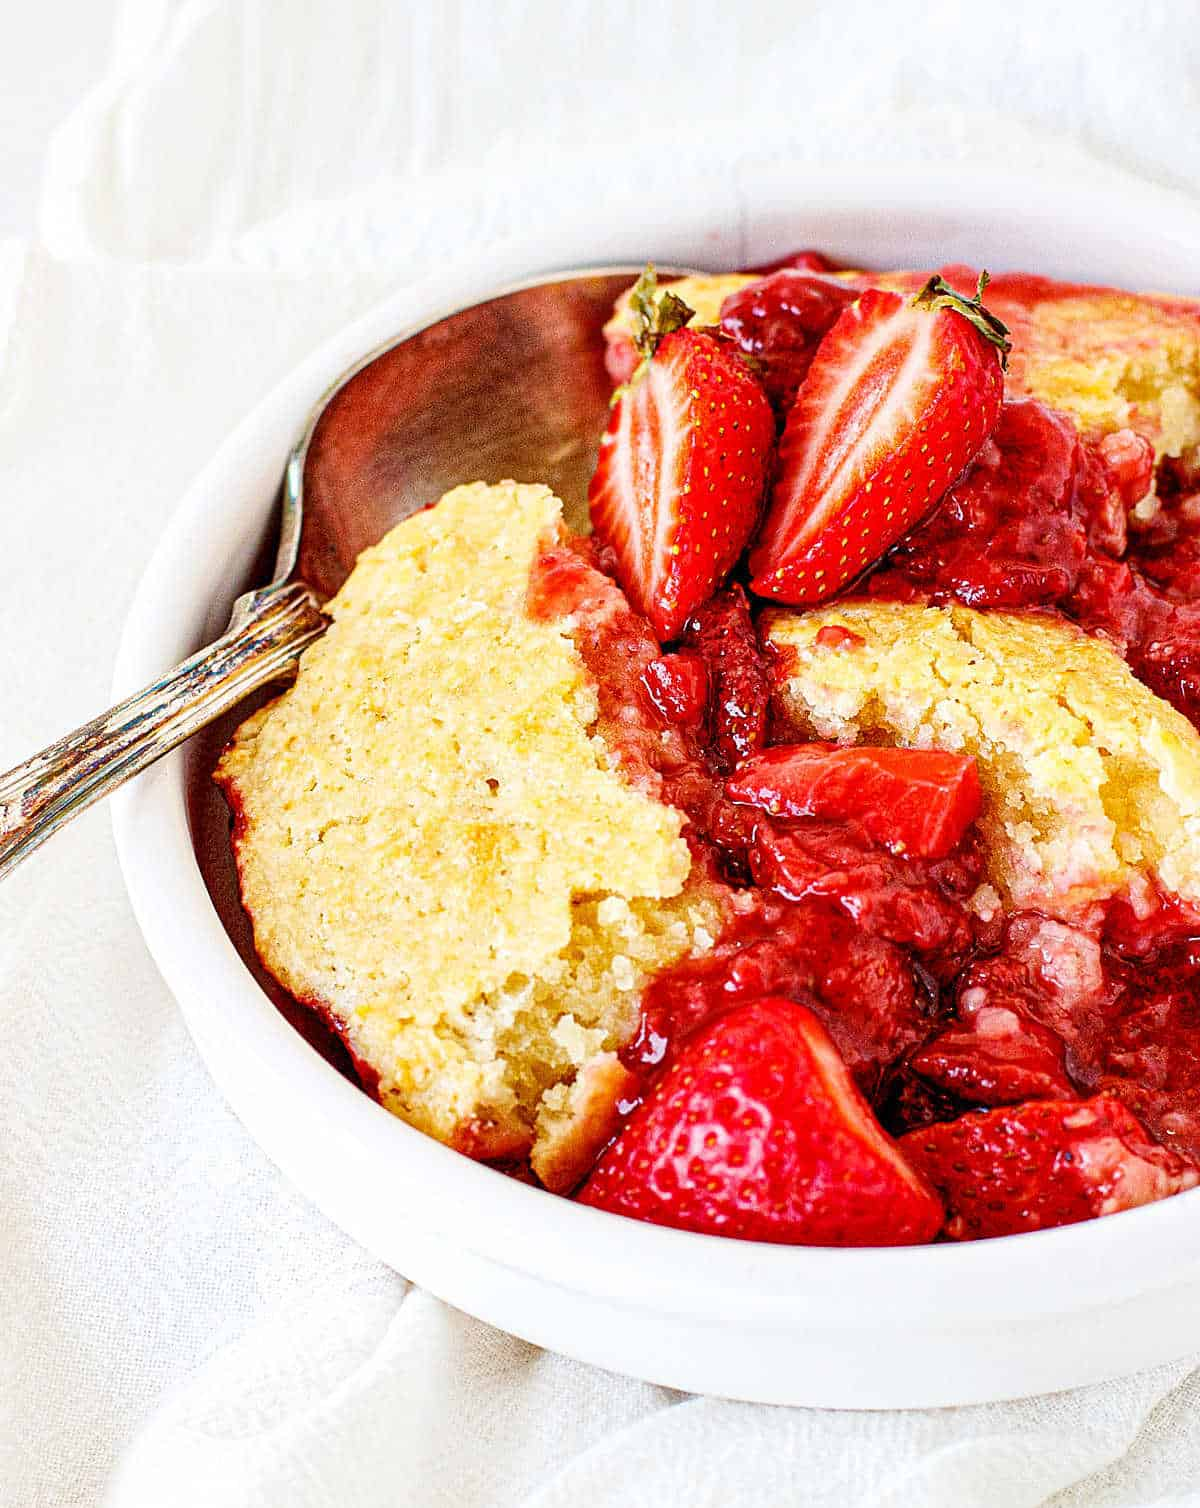 White bowl with strawberry cobbler serving, silver spoon, white background